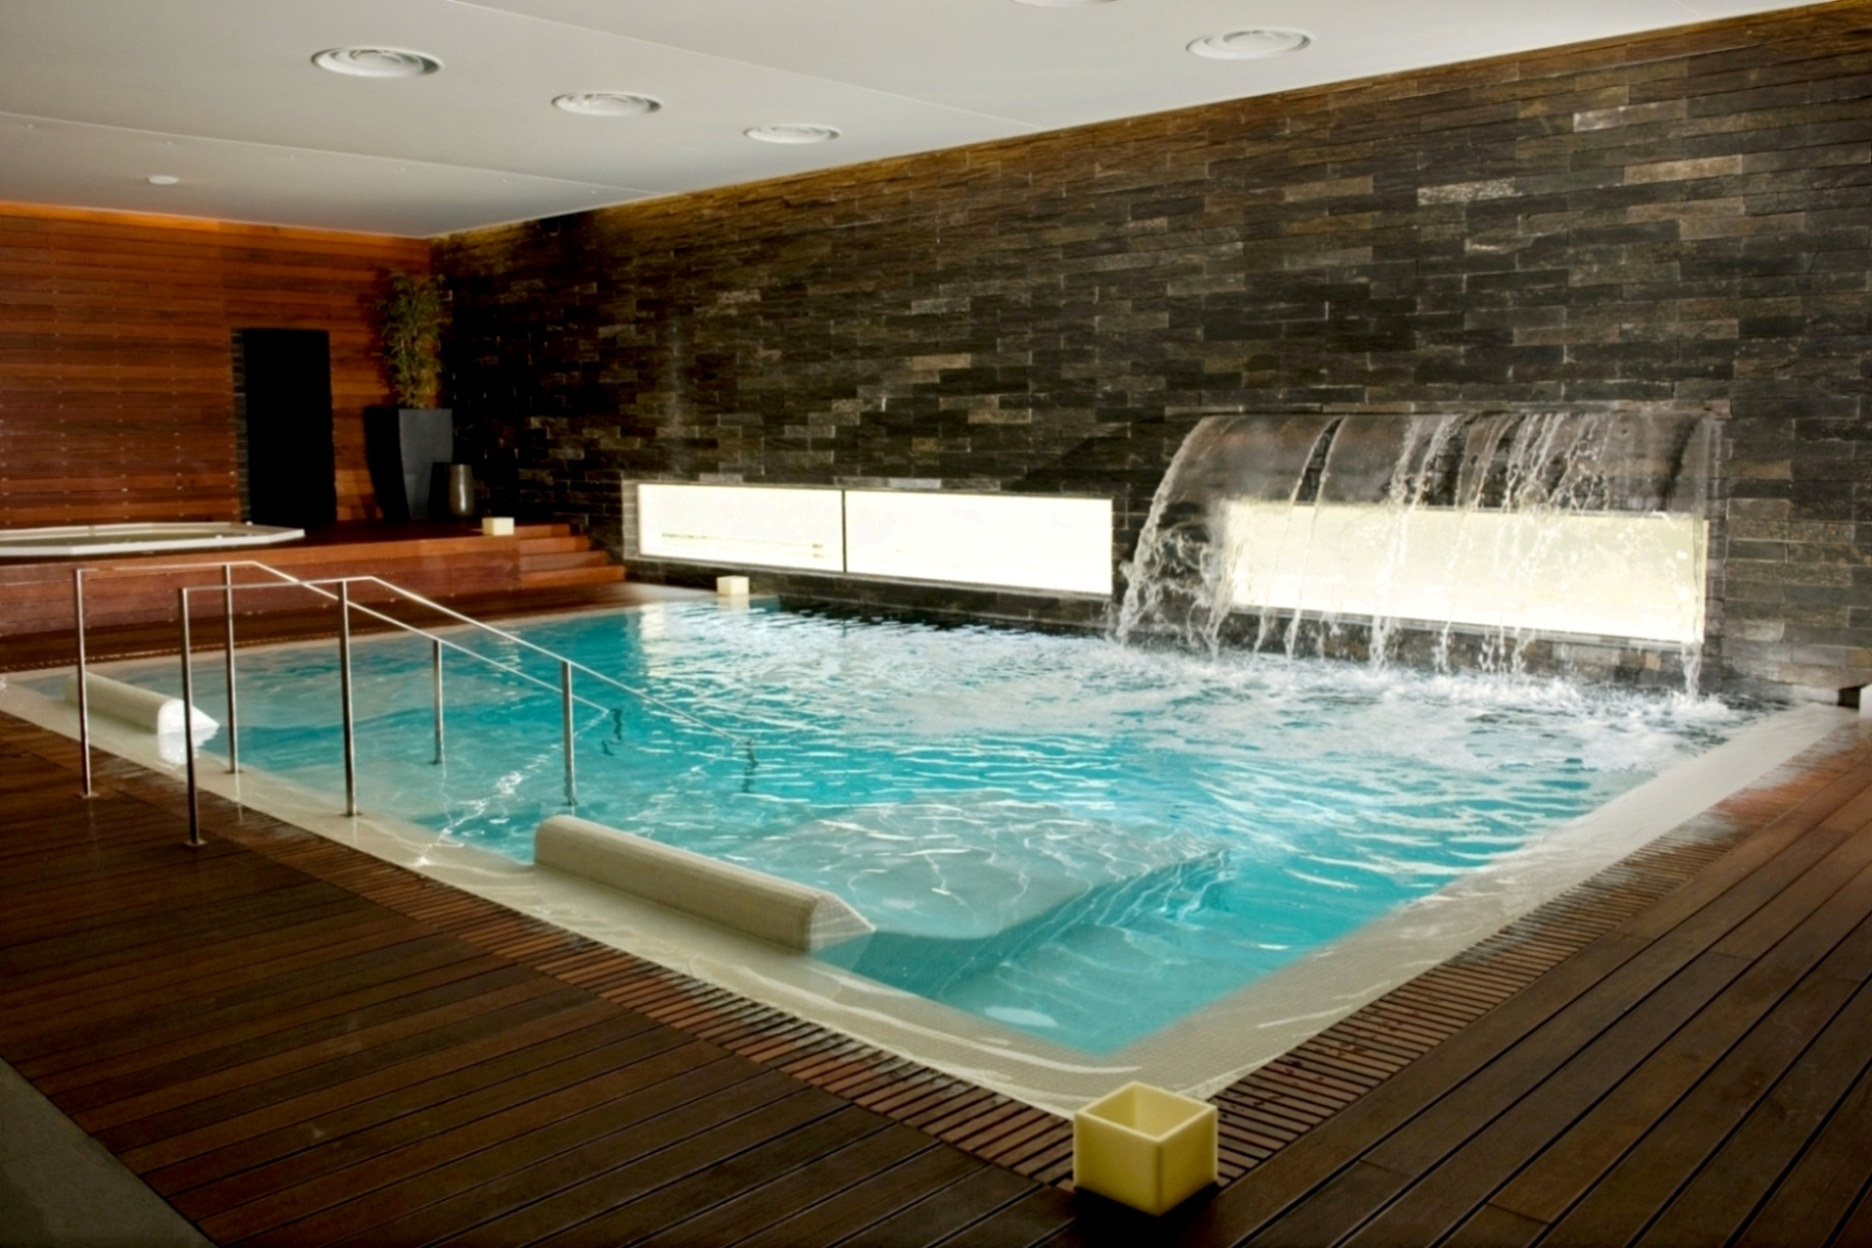 Time to Relax: Find Out What Are The Best Portuguese Spas portuguese spas Time to Relax: Find Out What Are The Best Portuguese Spas termas de monte real